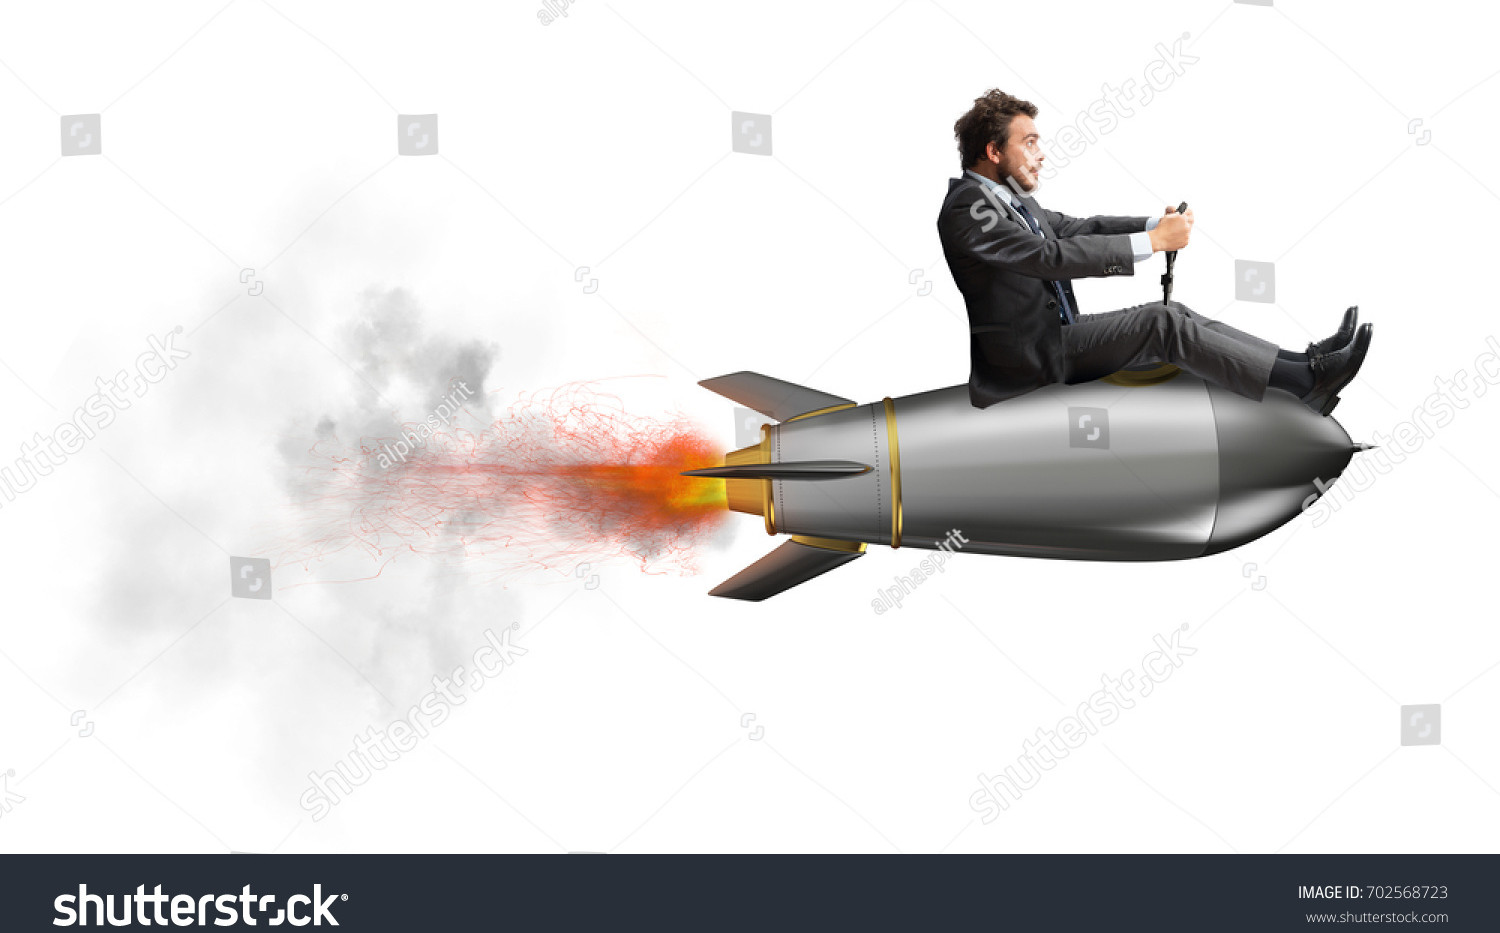 stock-photo-businessman-flying-over-a-ro